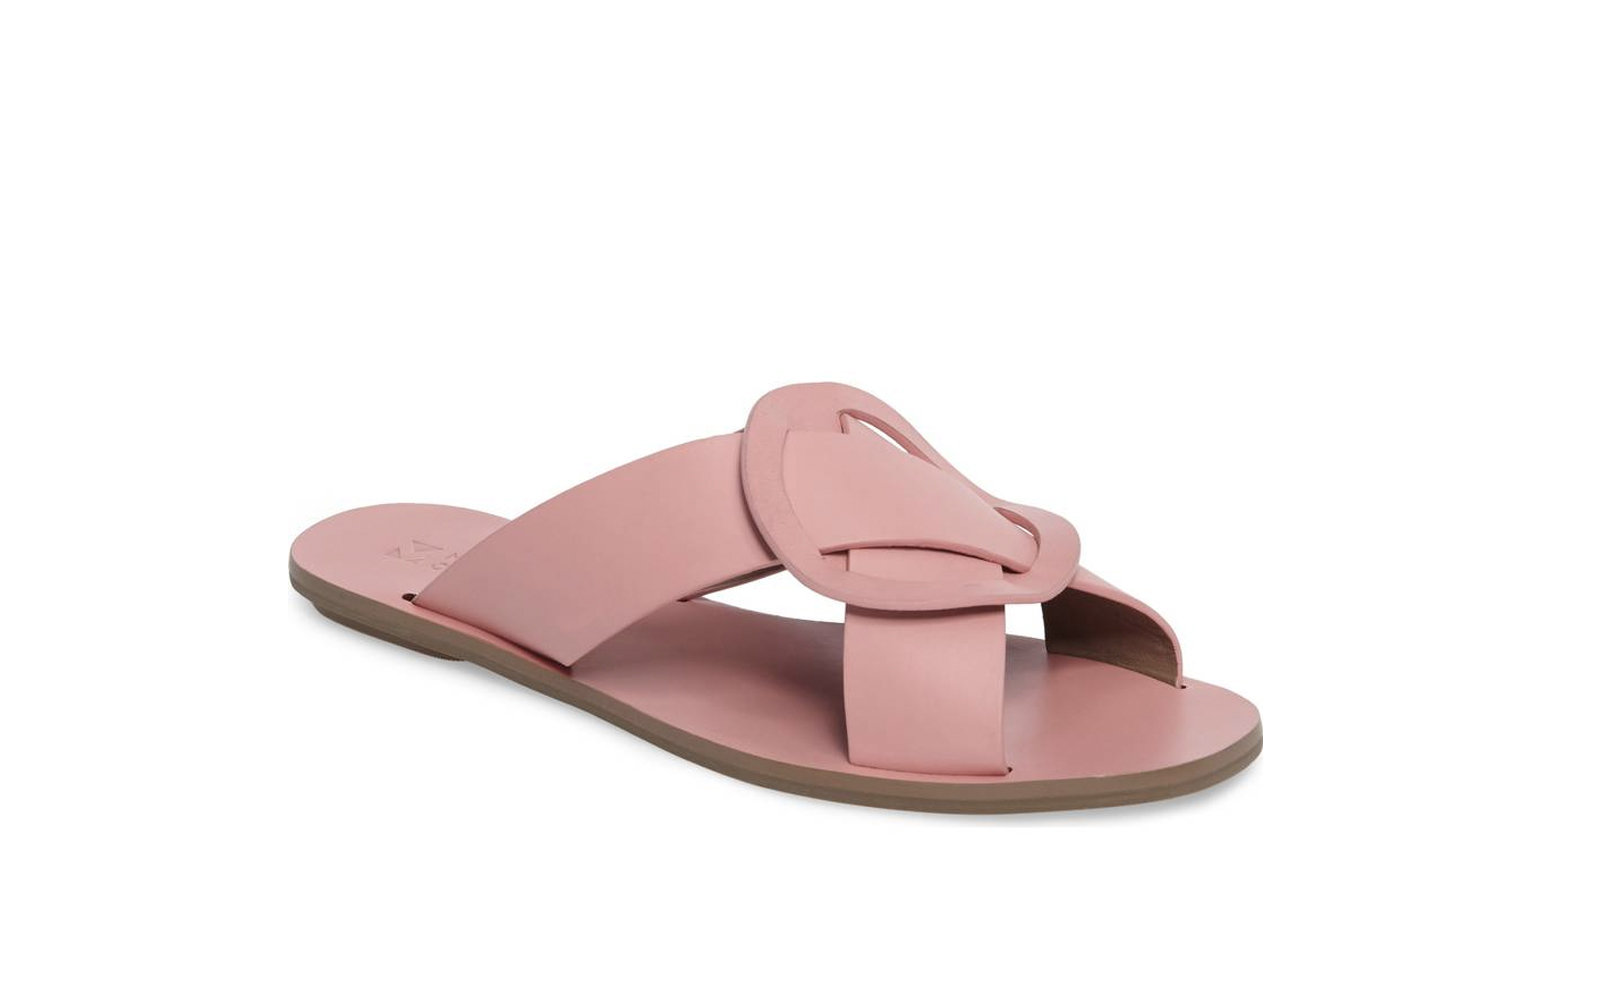 the best slide sandals for summer 2018 are as stylish as they are